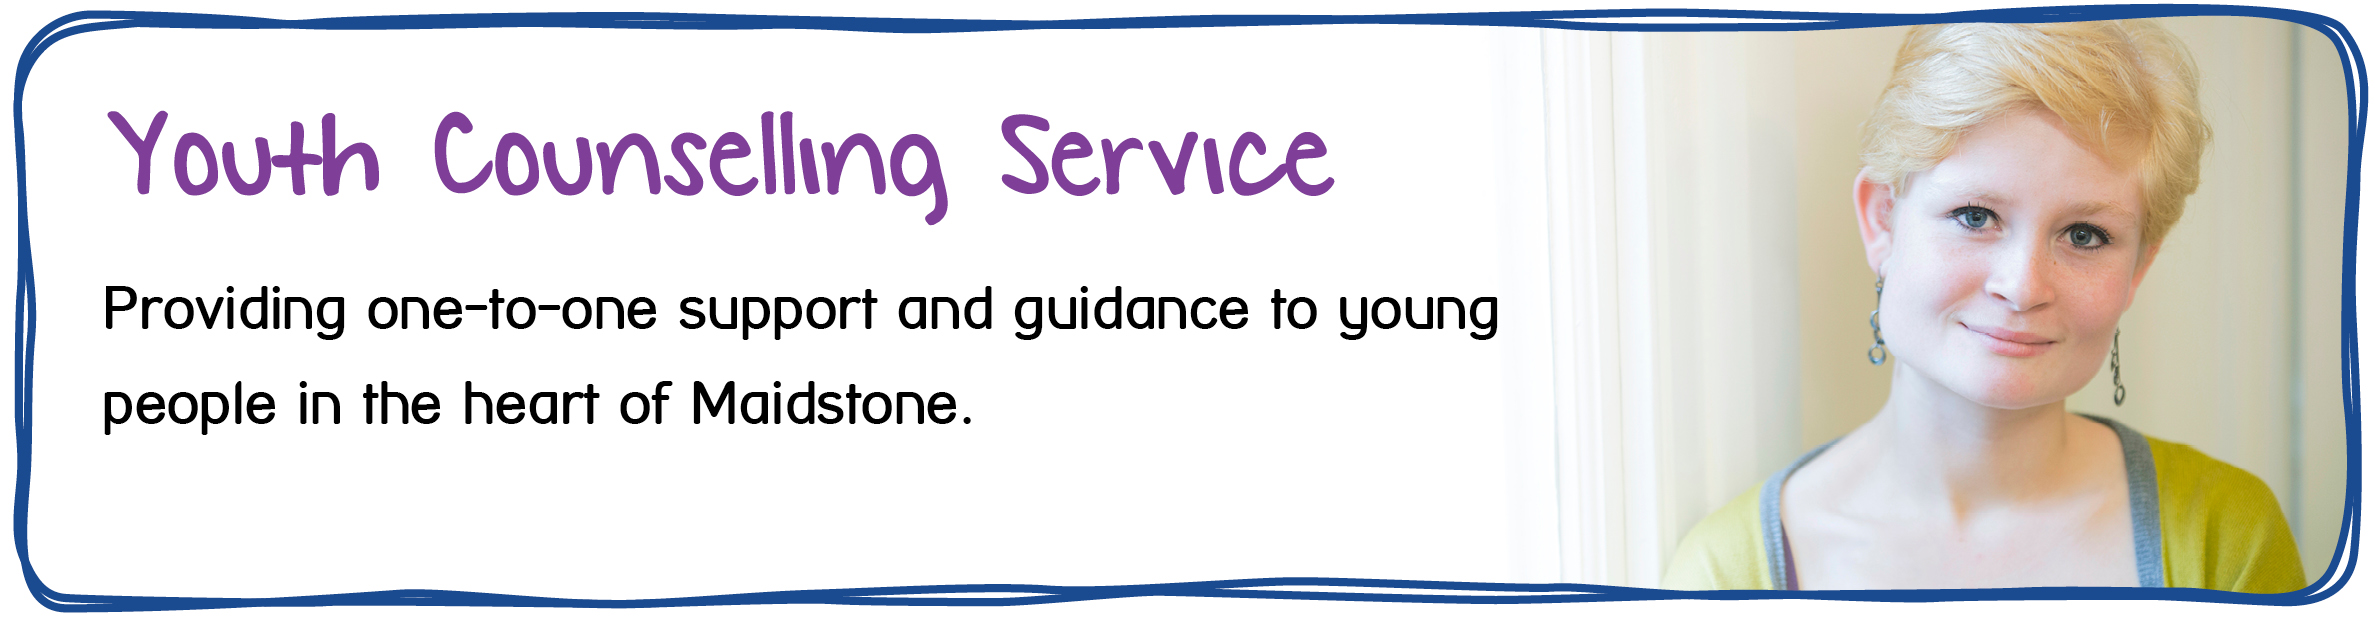 Youth Services - Youth Counselling Service. Providing one to one support and guidance to young people in the heart of Maidstone.